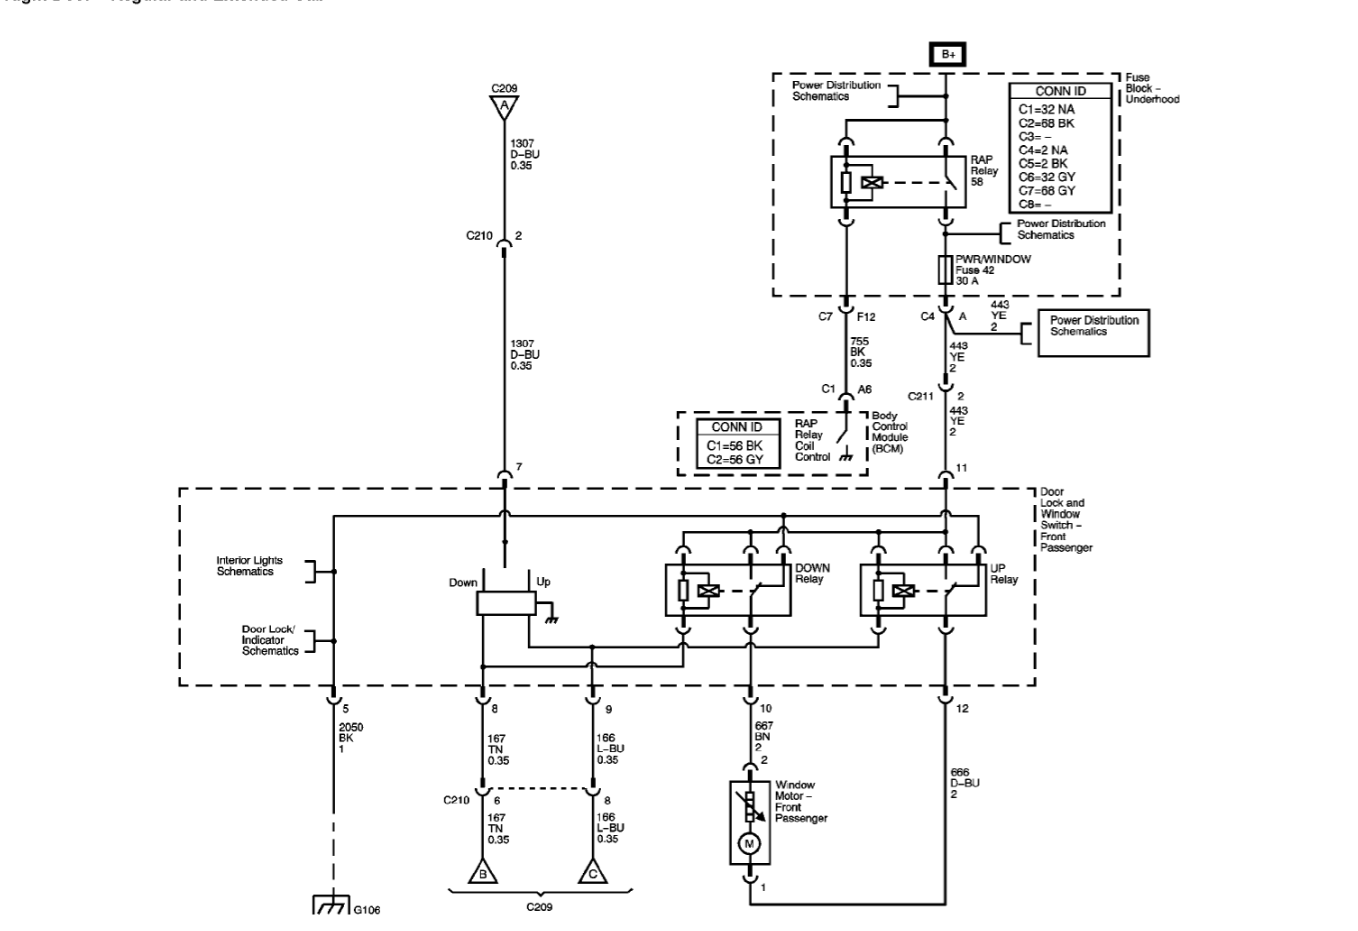 a02dc97c-3e7a-4d72-be2e-d0919107aea0_window motor circuit.png